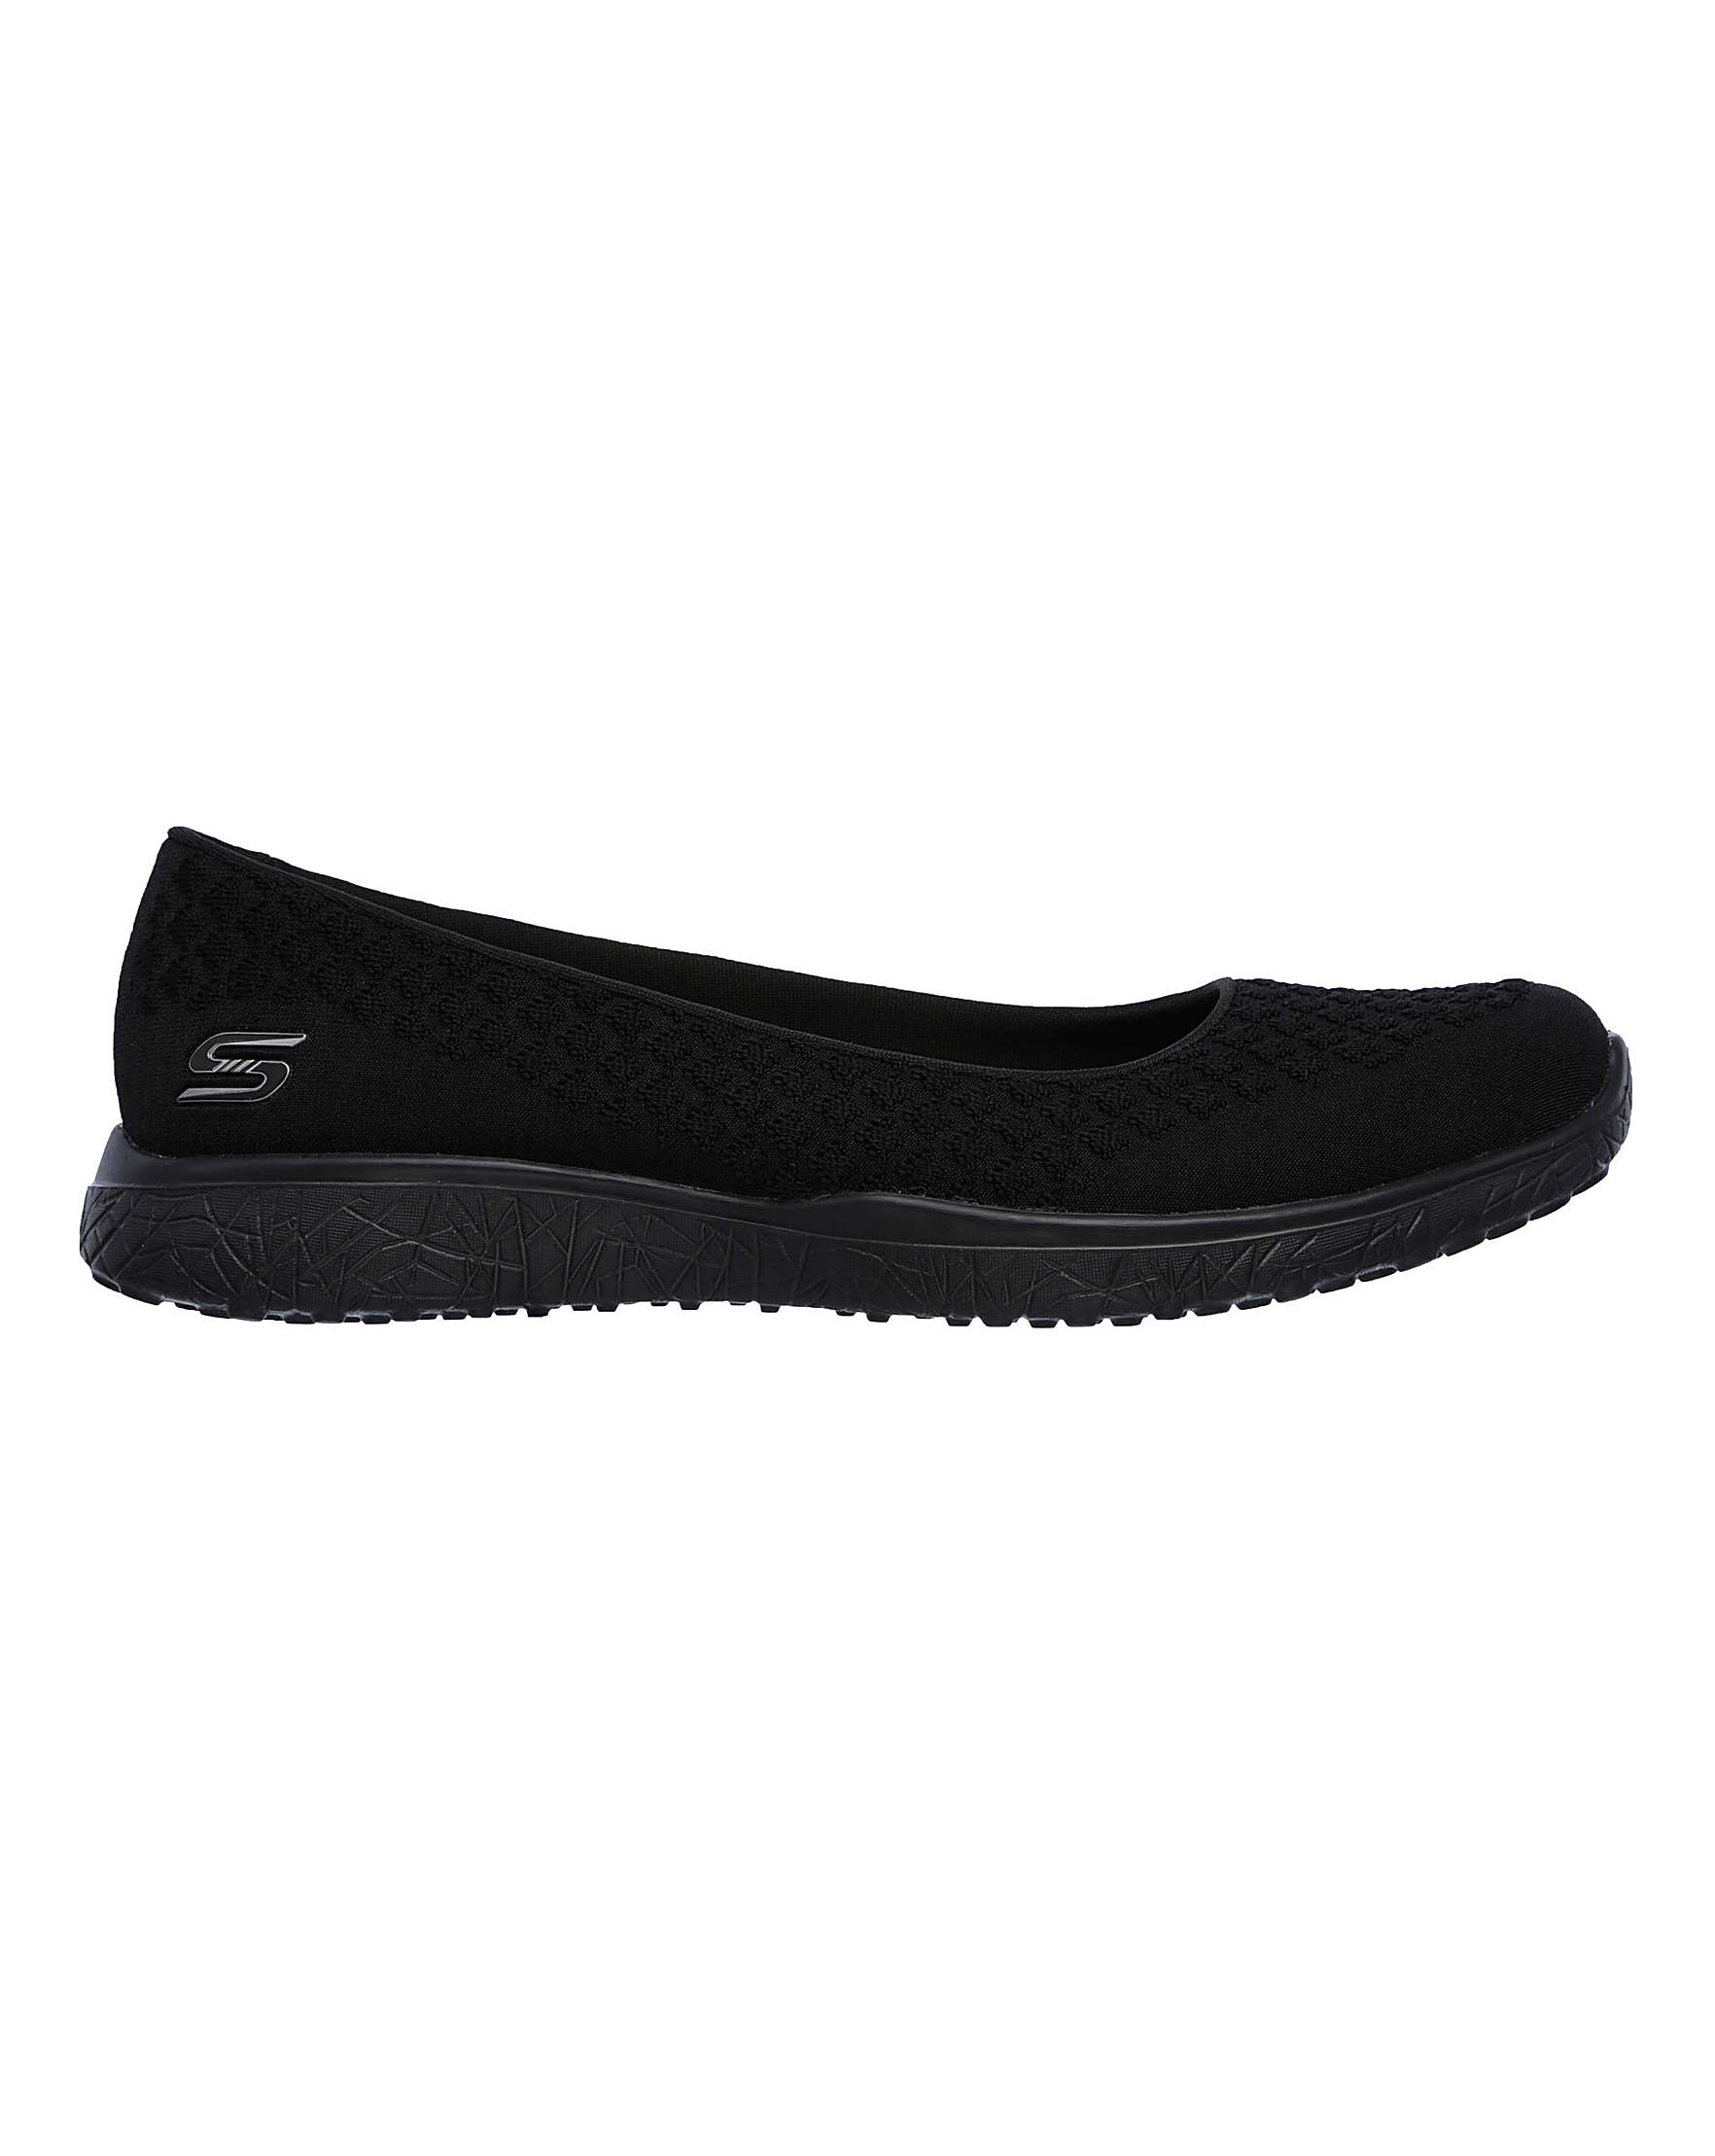 39e078cdc24 Skechers Microburst Wide Fit Trainers